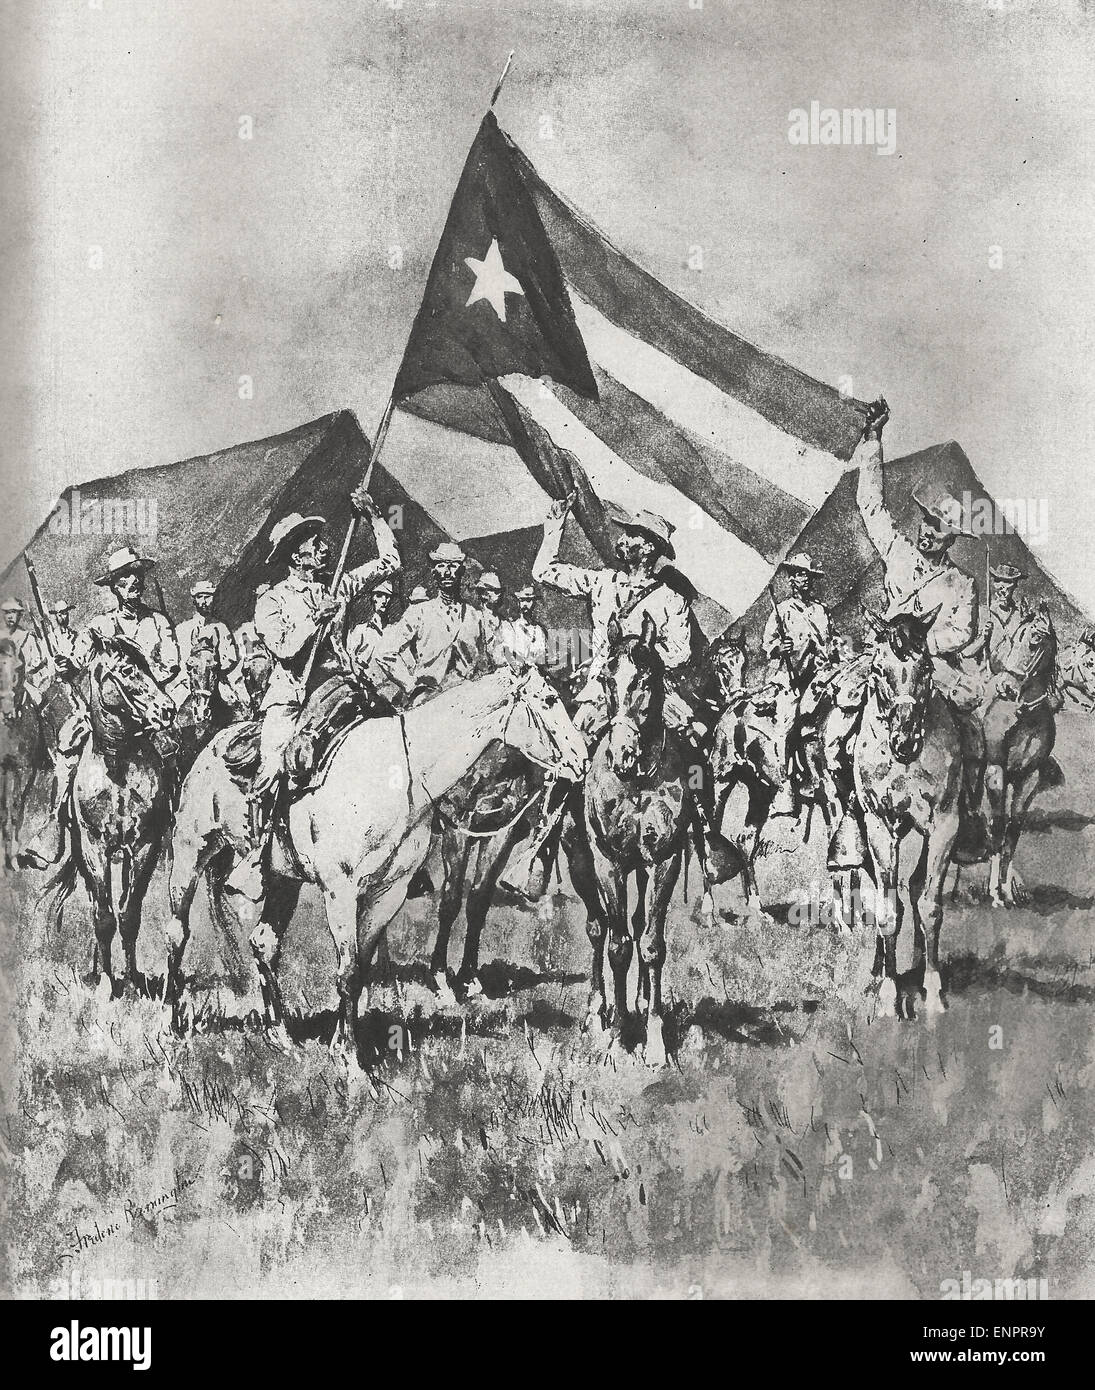 The Flag of Cuba - Insurgent Cavalry formed for a charge during Cuban War of Independence Stock Photo